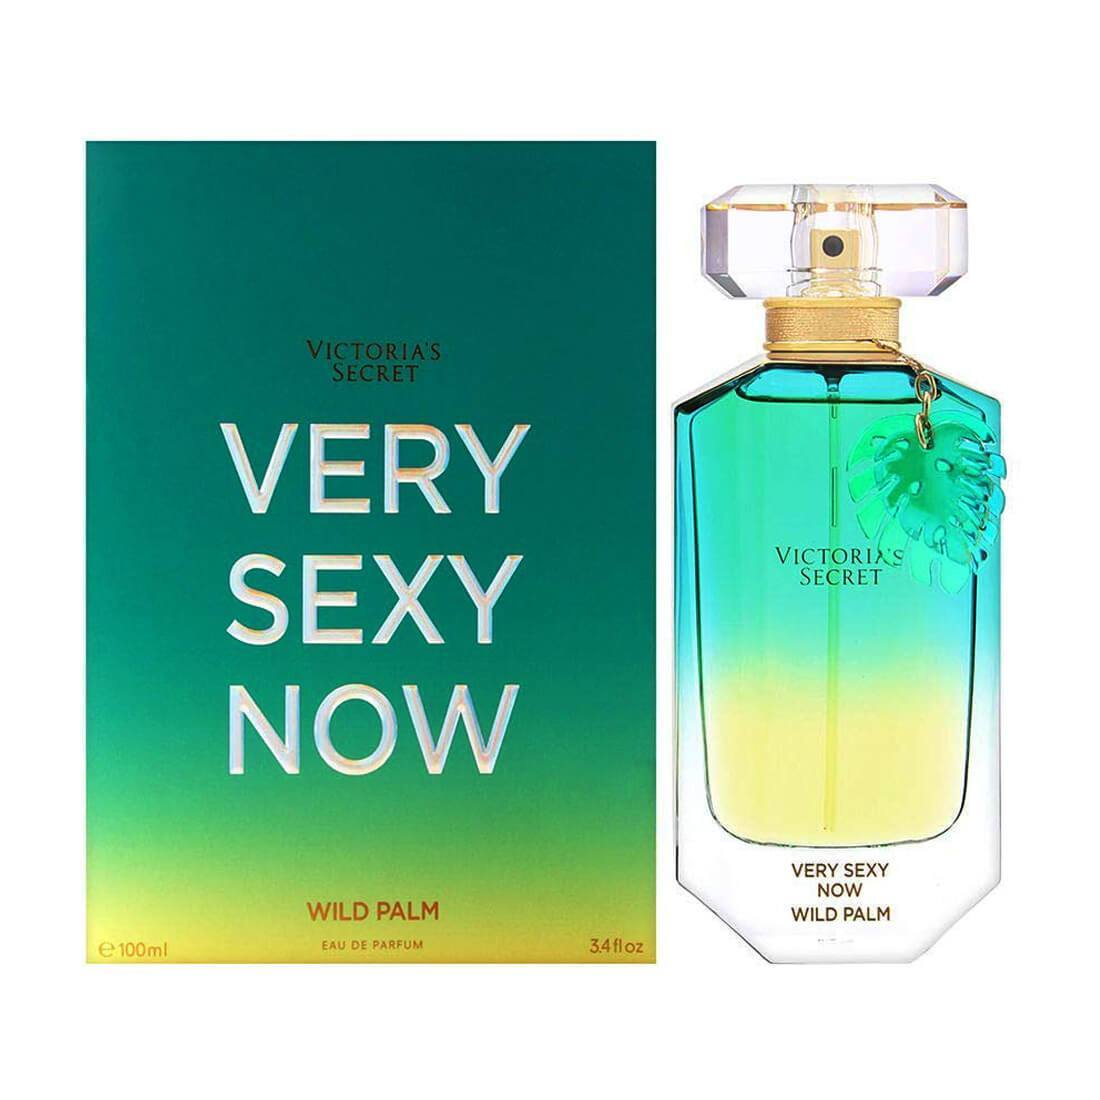 Victoria Secret Very Sexy Now Wild Palm Perfume - 100ml